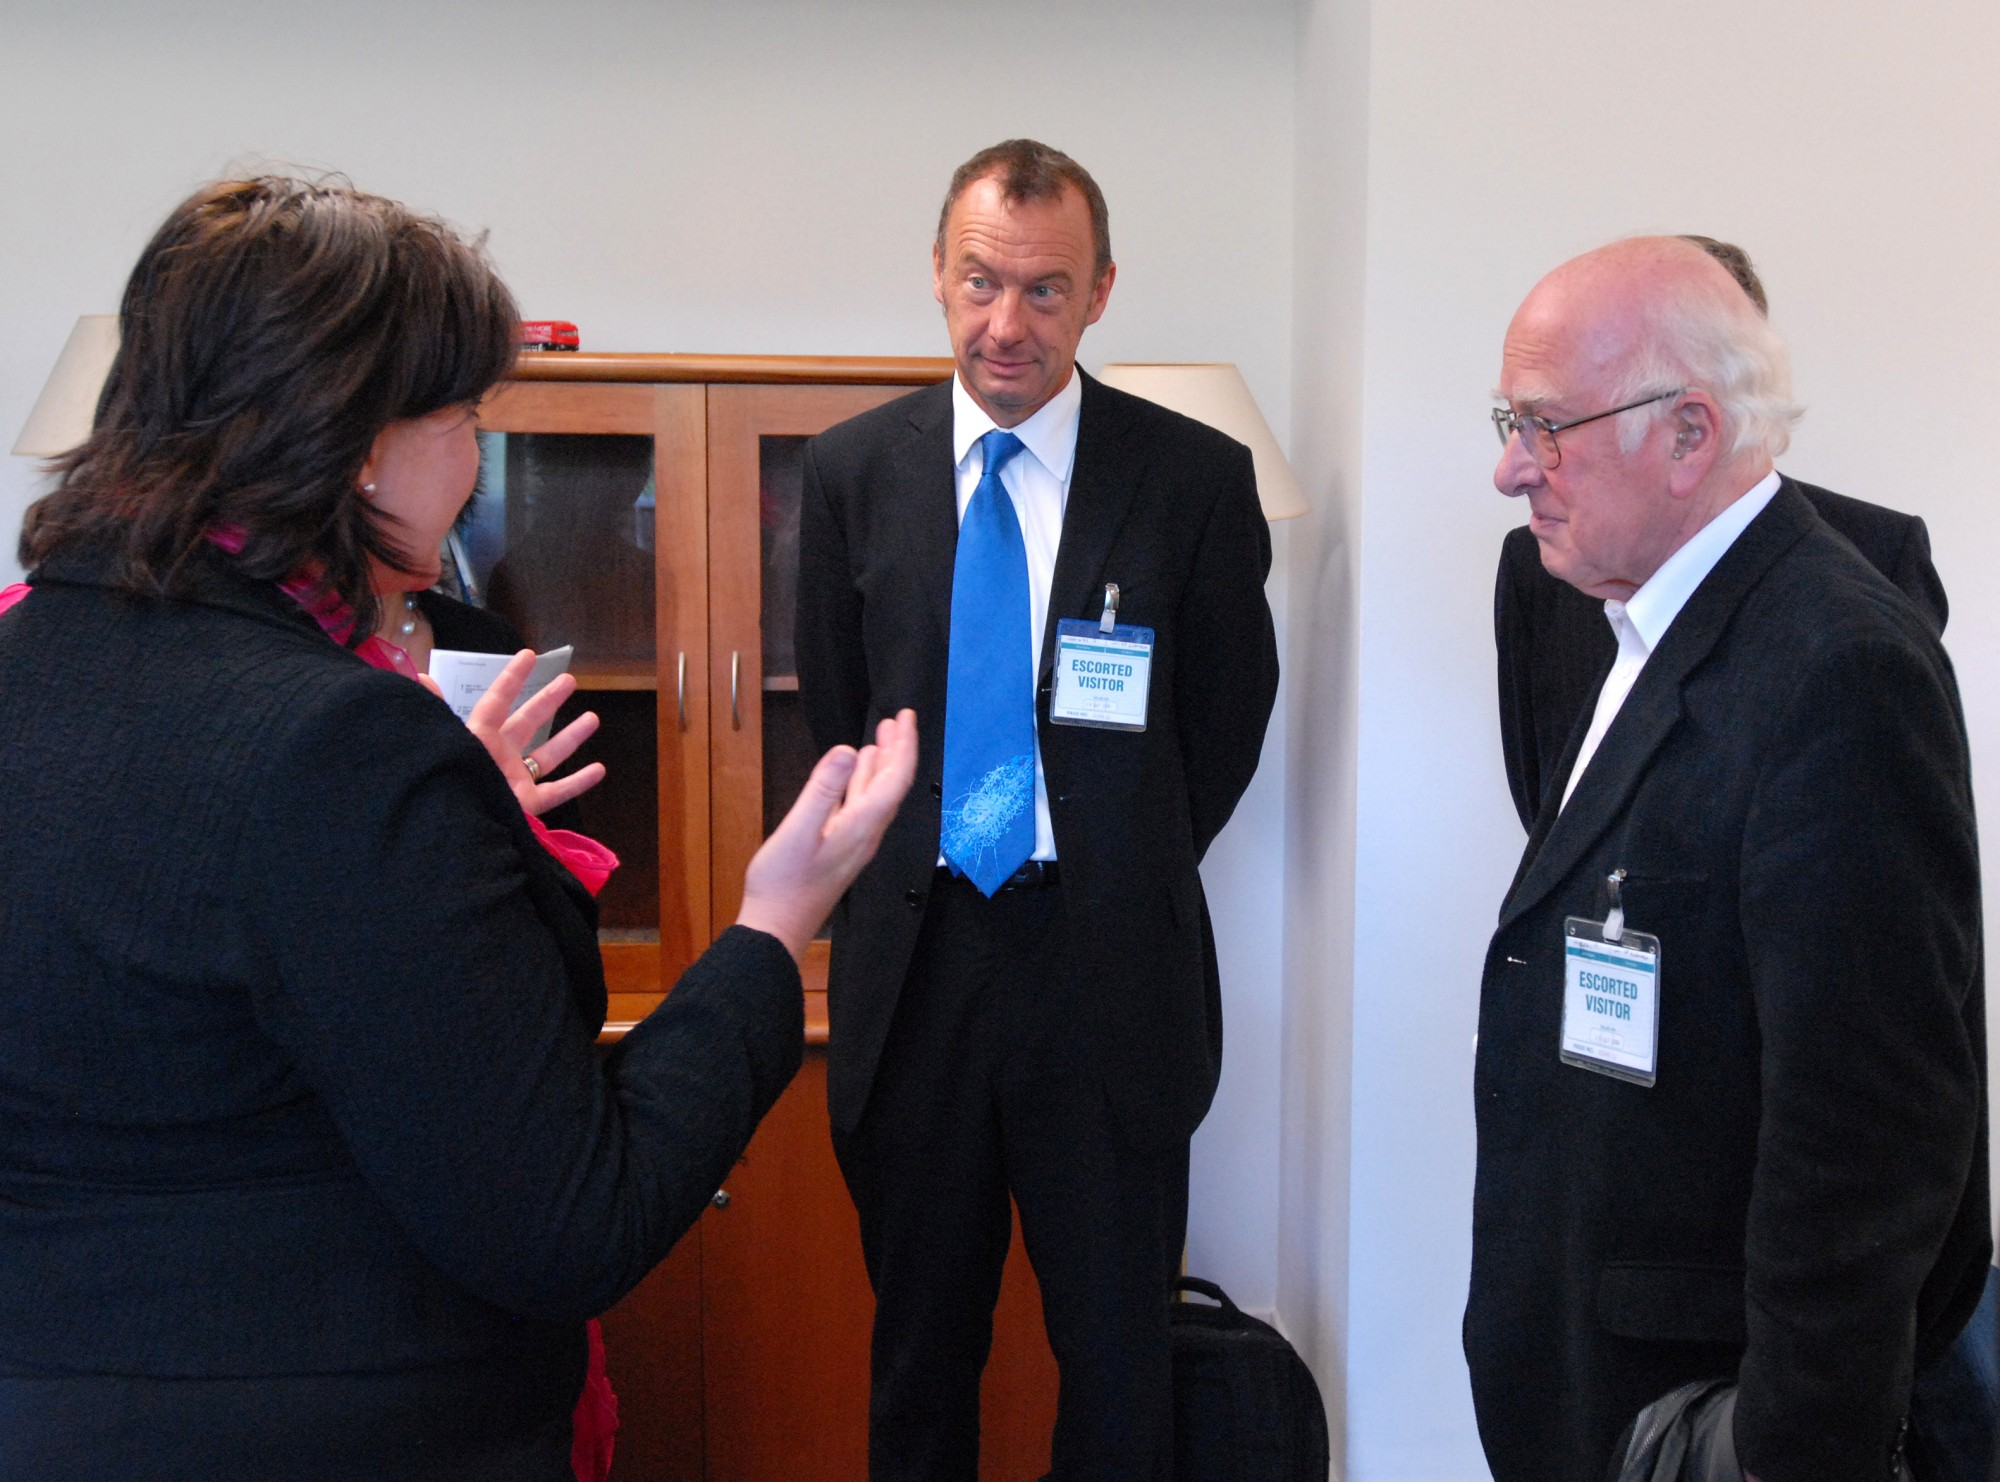 From left to right: Fiona Hyslop, Richard Kenway and Peter Higgs at the Scottish Parliament.